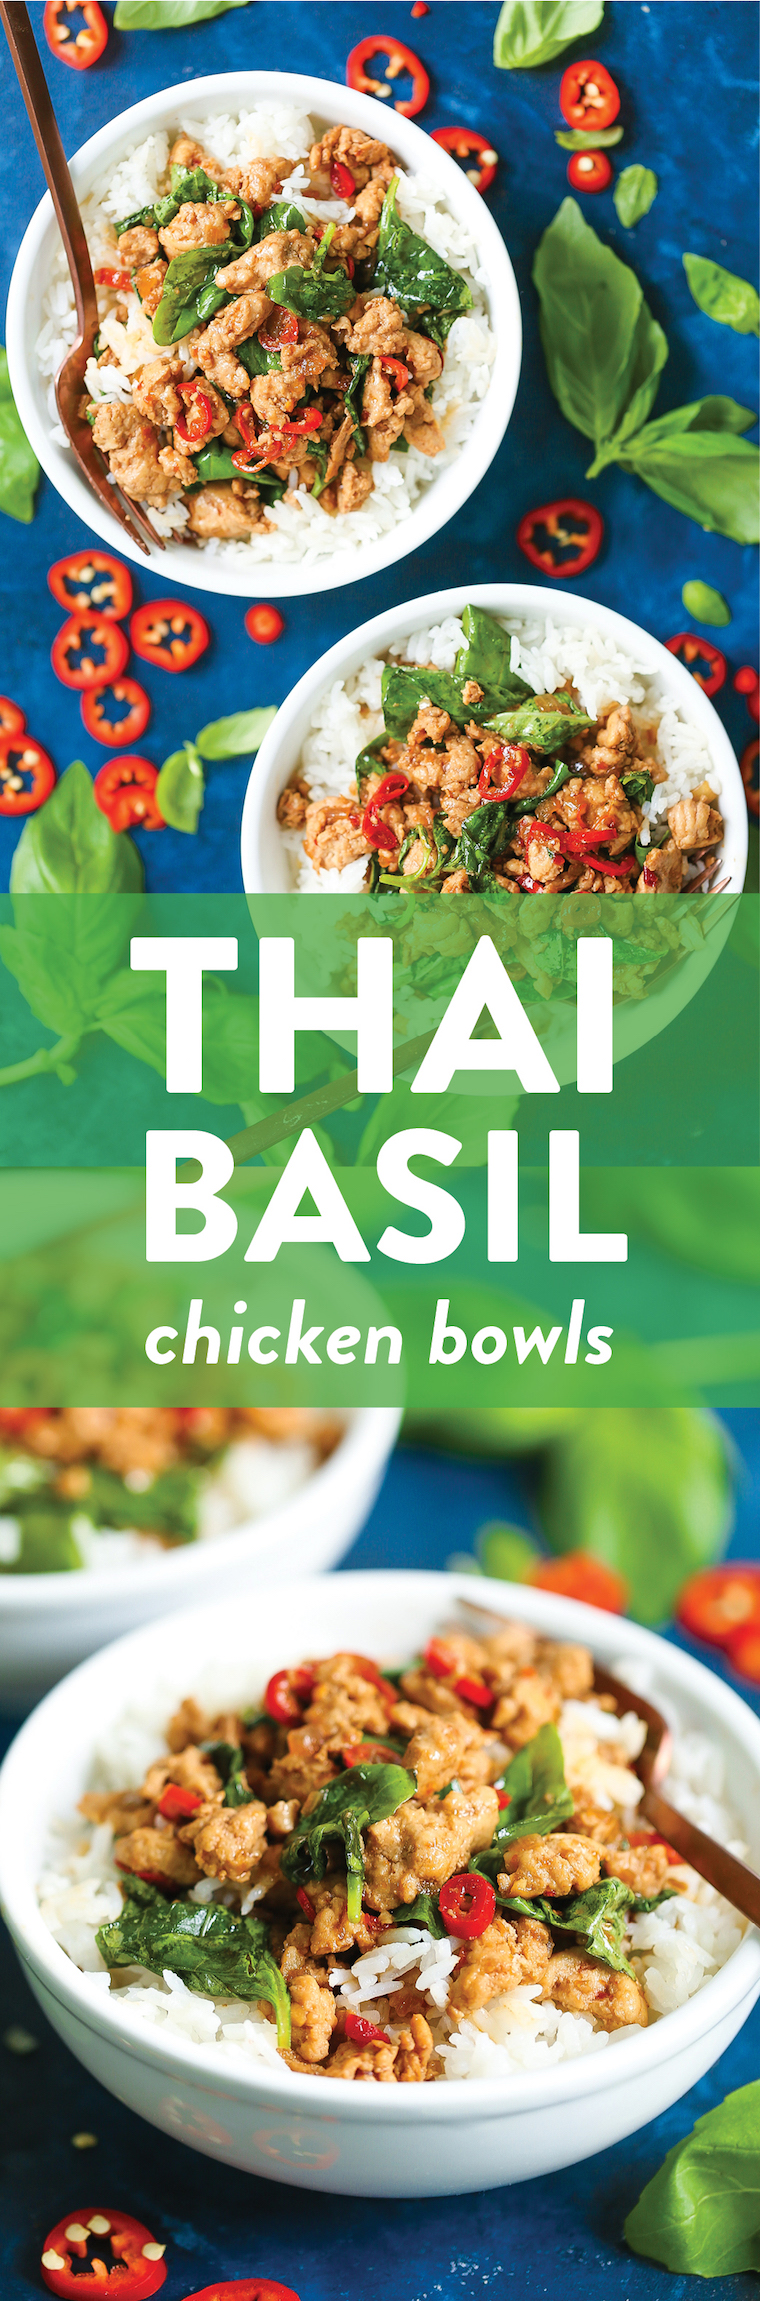 Thai Basil Chicken Bowls - A 30-minute meal with less than 400 calories per serving? YES AND YES!!! It's so quick to whip up, budget-friendly, and SO GOOD!